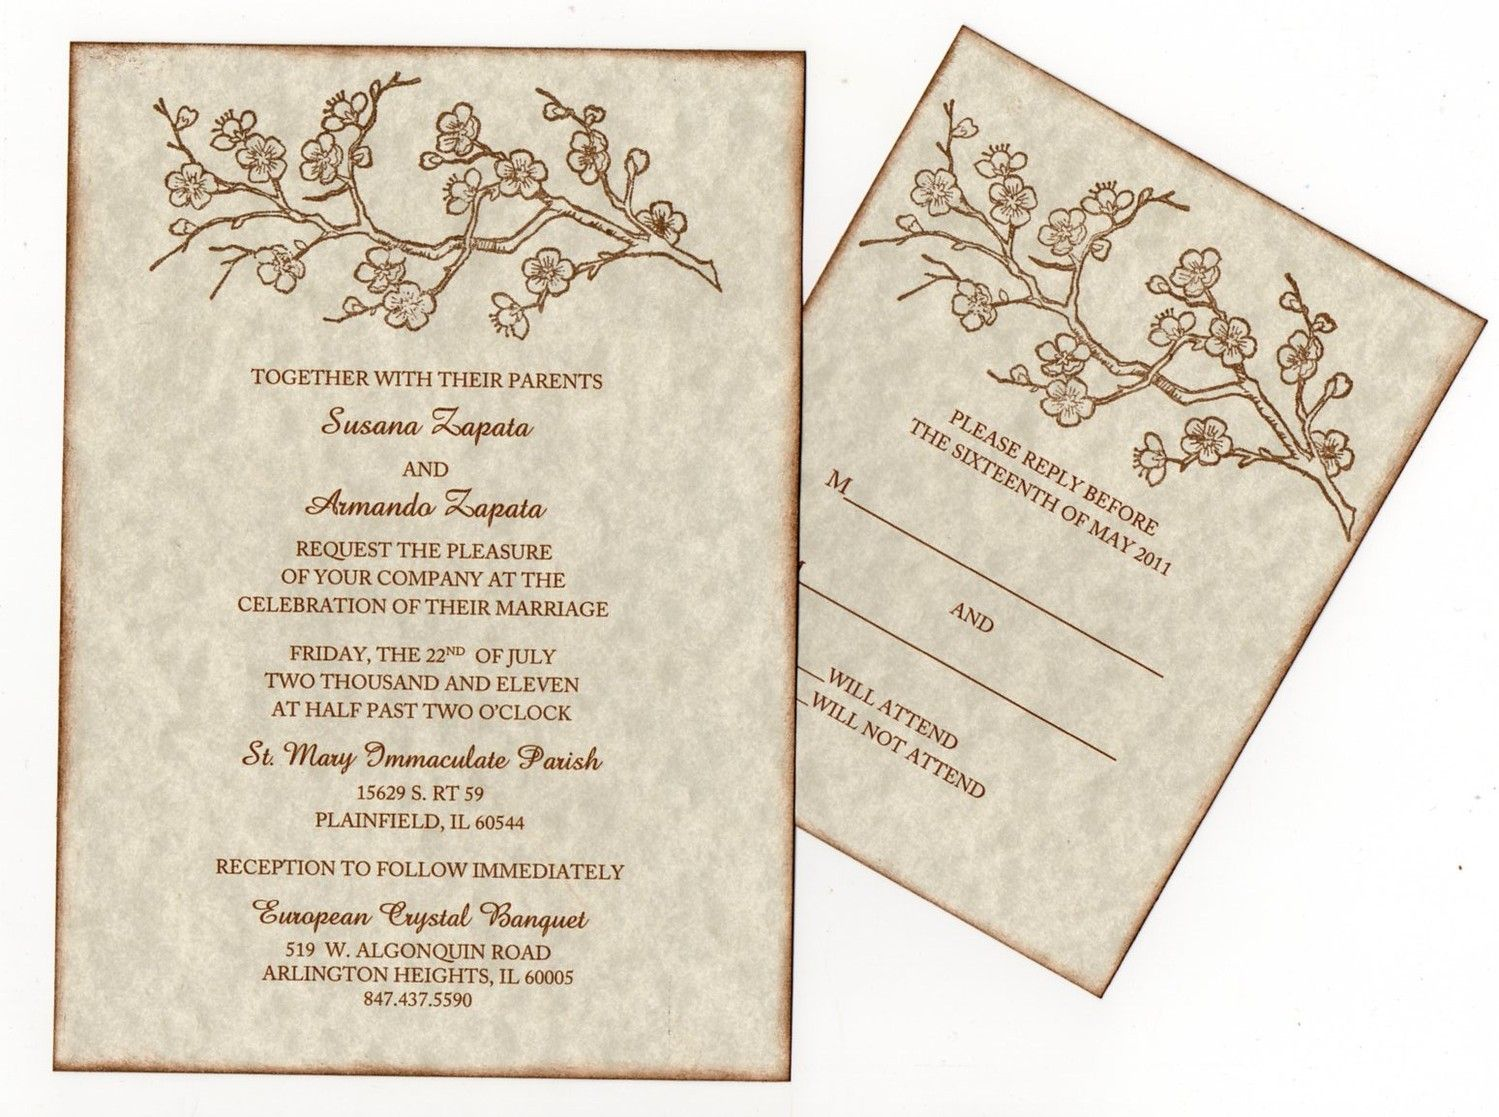 Wedding Card Invitation Ideas: Wedding Invitation Wording: Indian Wedding Invitation